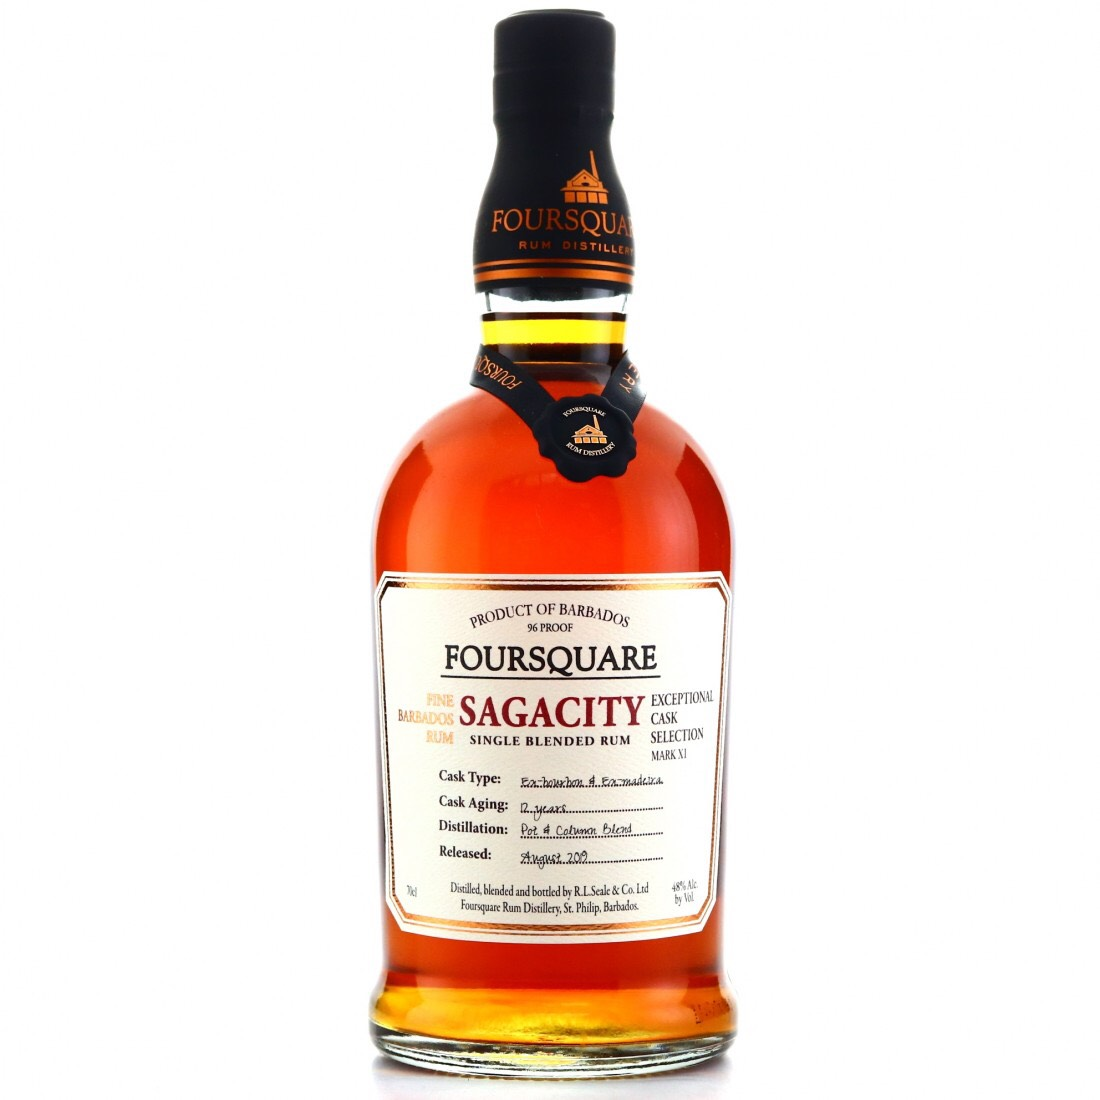 Bottle image of Exceptional Cask Selection XI Sagacity